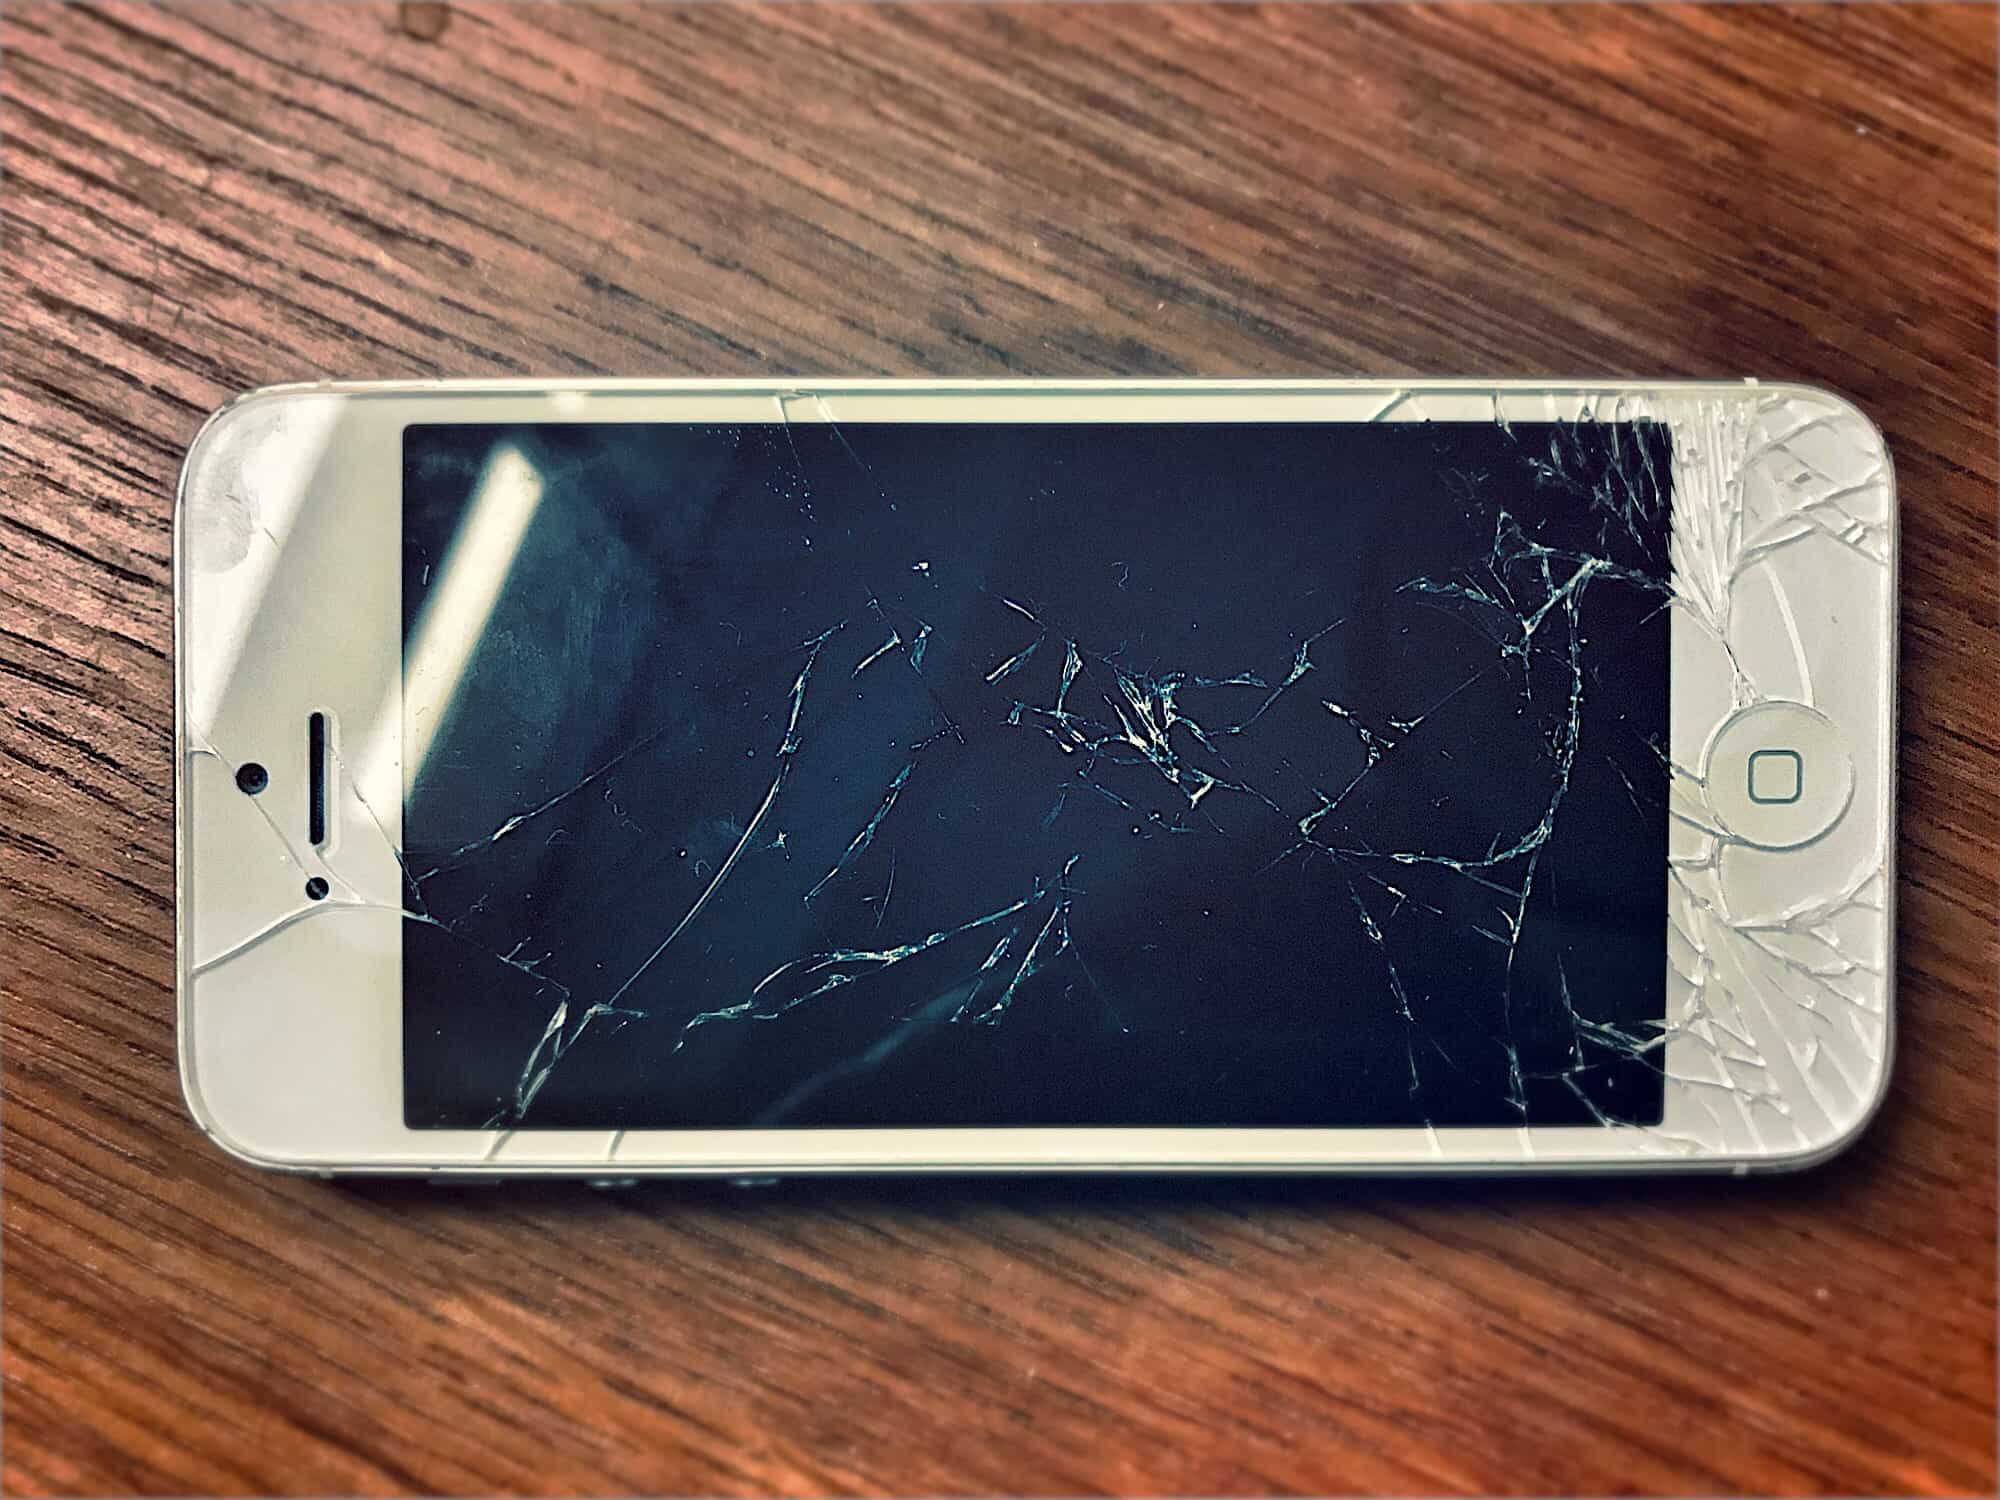 With these tips, you can squeeze extra years out of your iPhone.